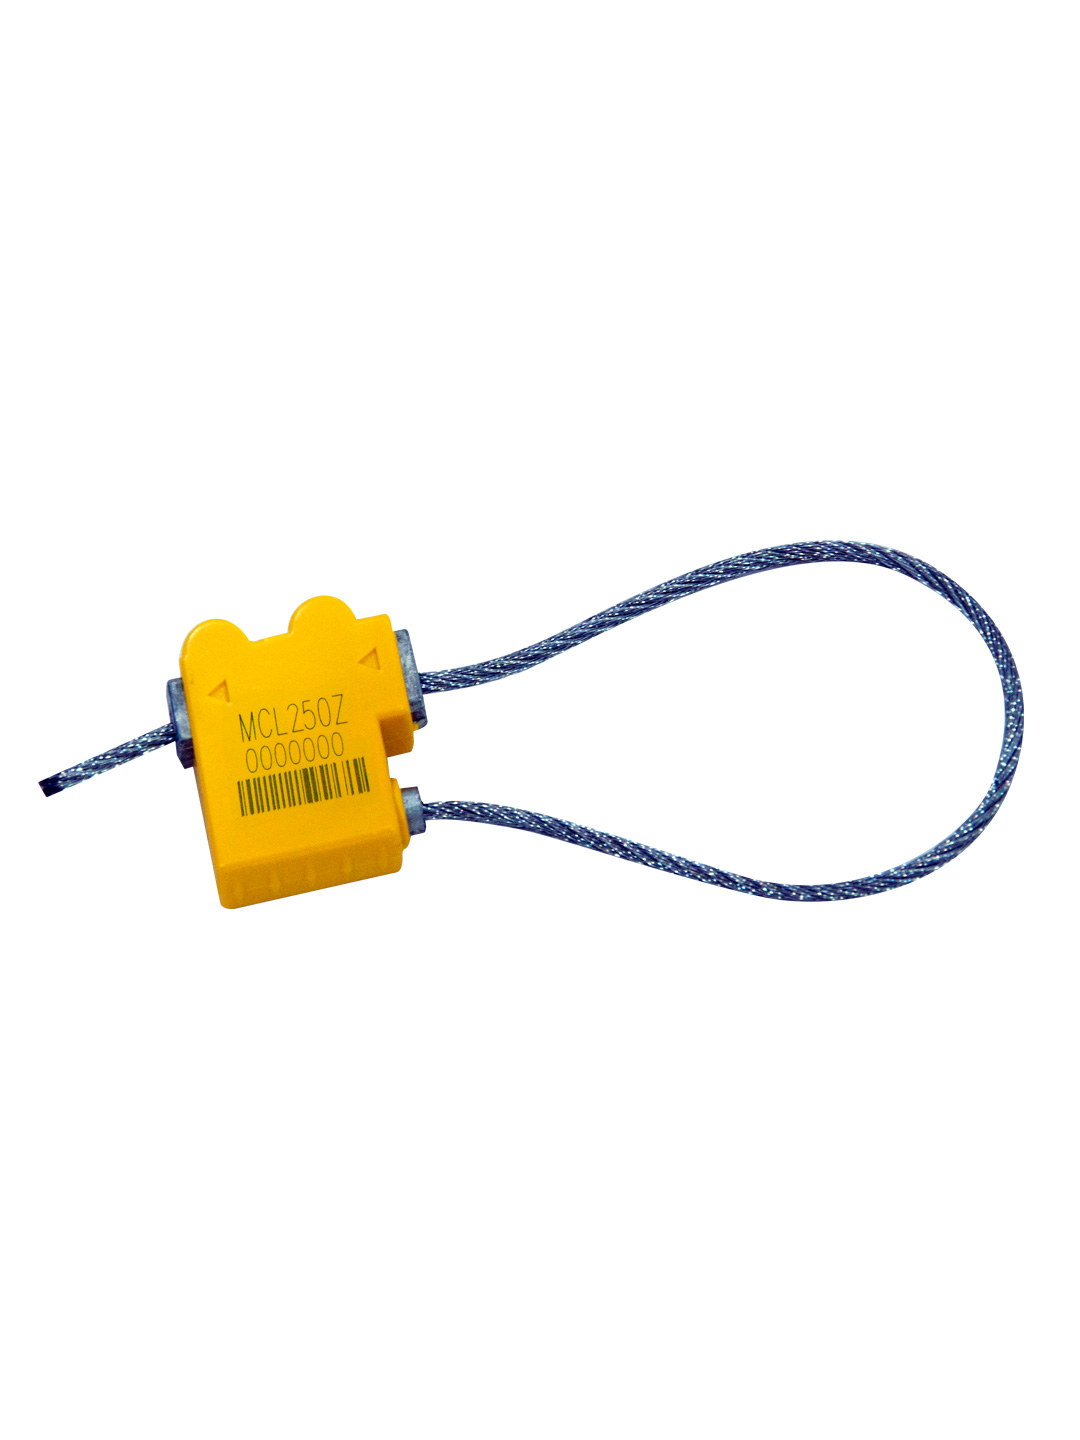 mclz 250 cable seal